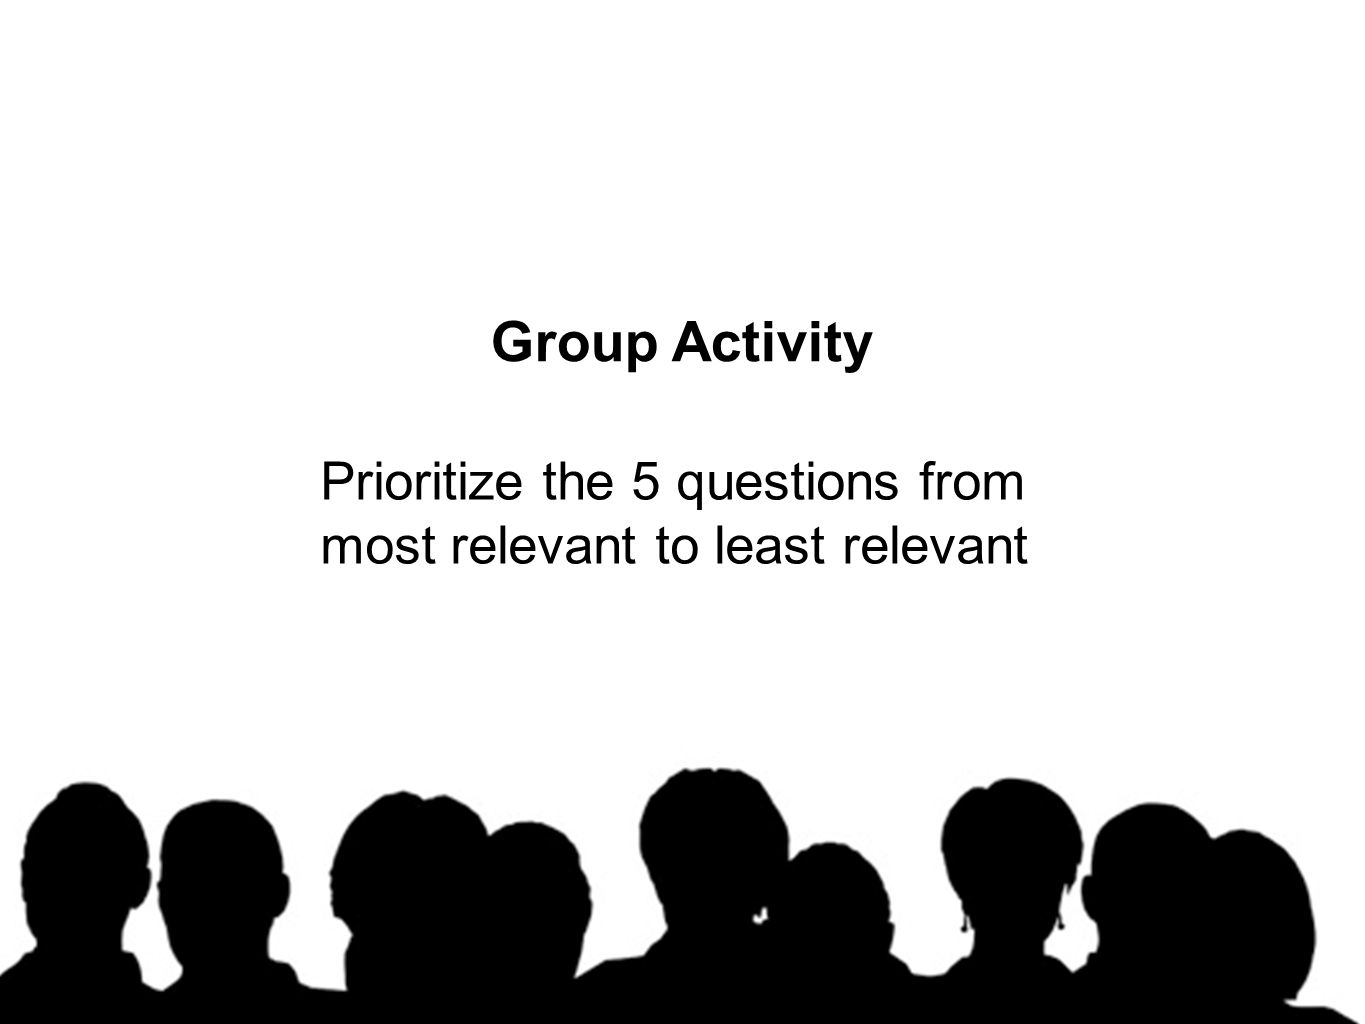 Group Activity Prioritize the 5 questions from most relevant to least relevant